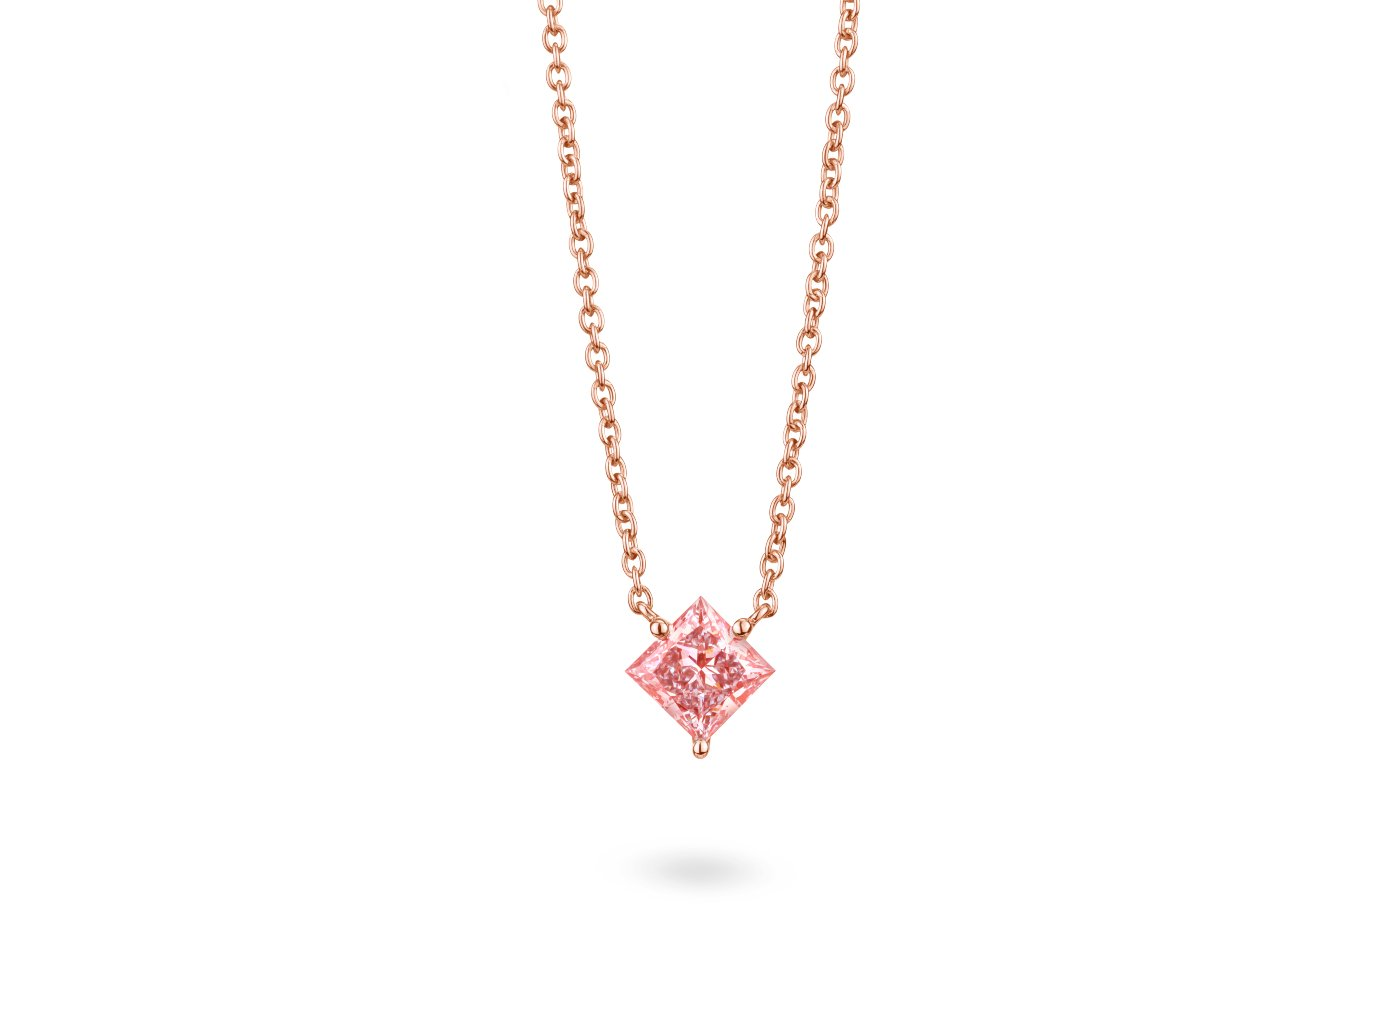 Front view Princess 1-1/8 carat pendant with pink diamond